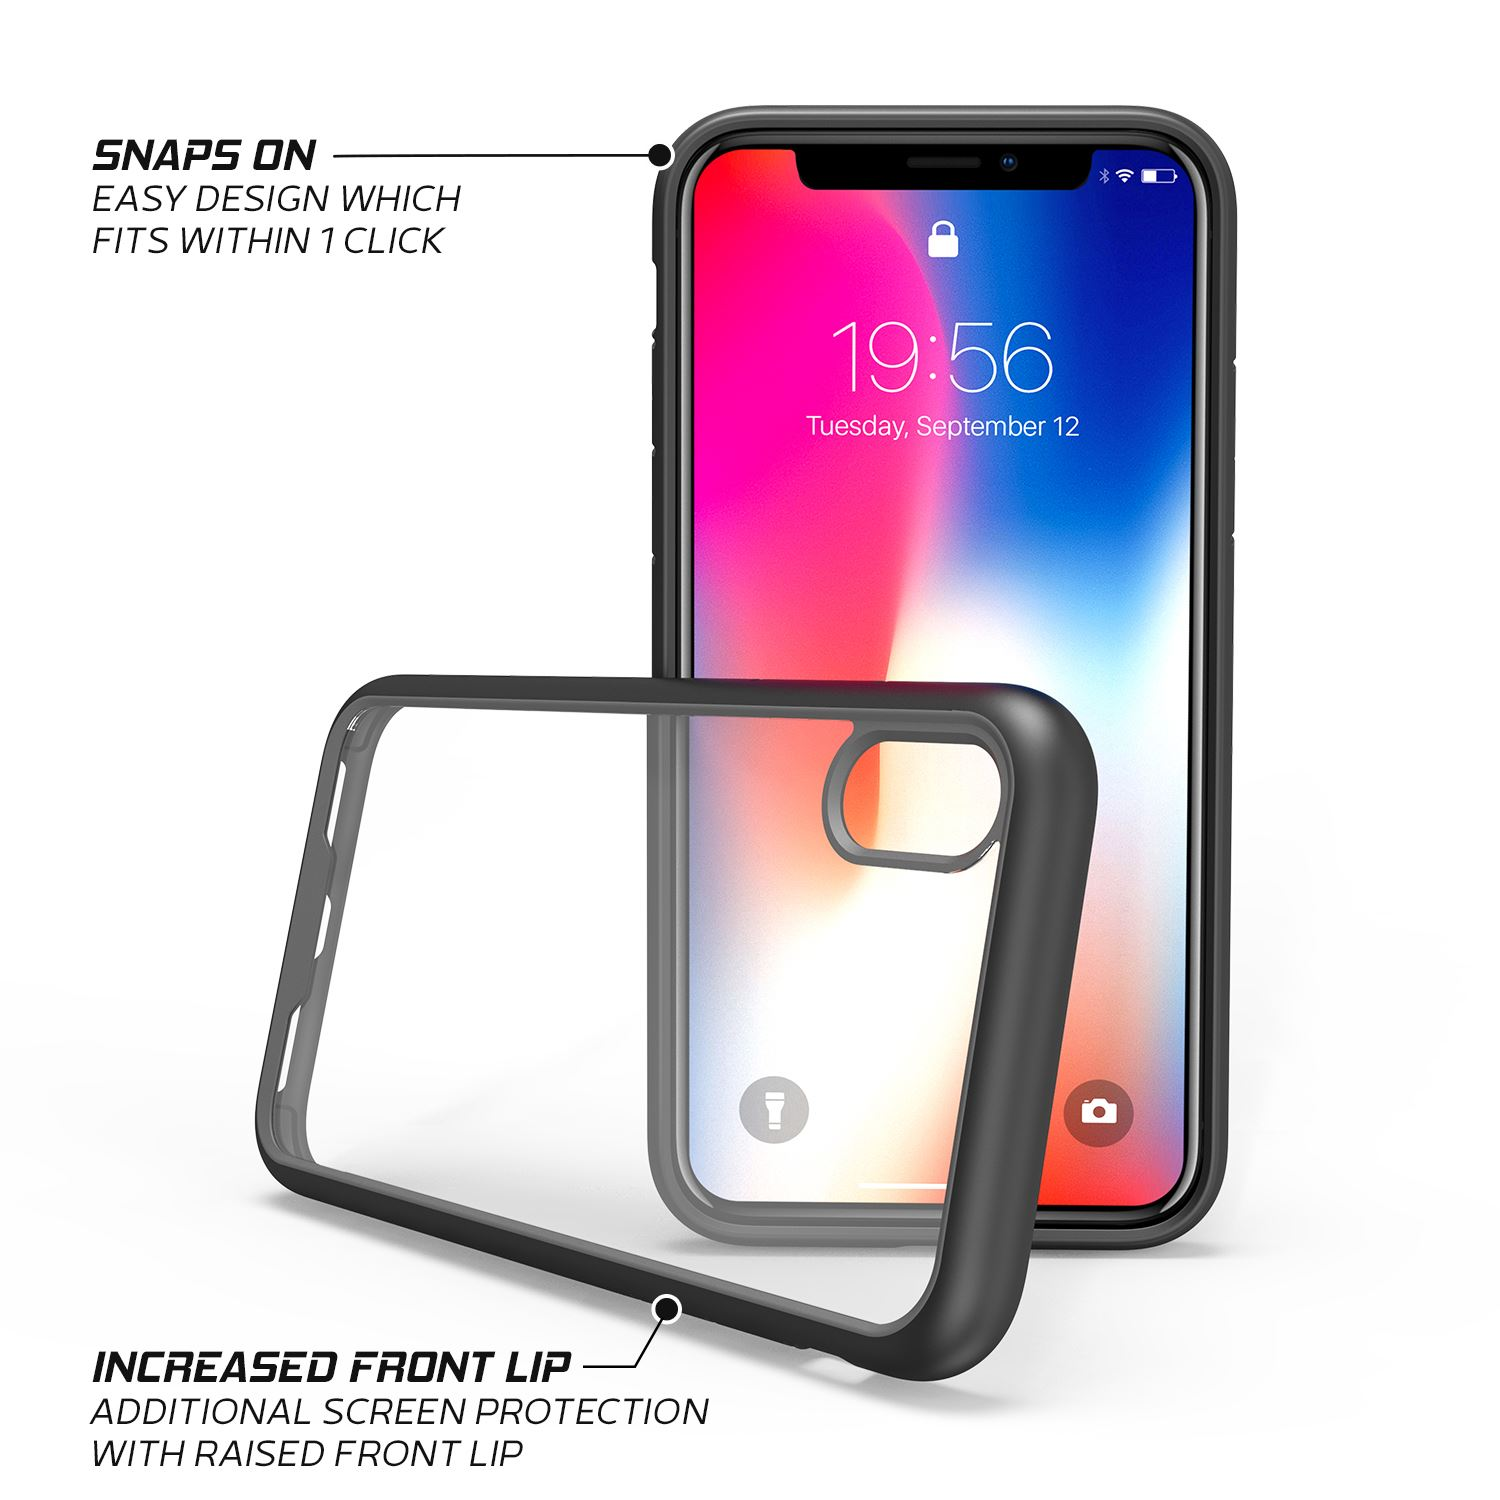 thumbnail 37 - For Apple iPhone XR Xs Max X 8 7 Plus 6 Se 2020 Case Cover Clear Shockproof Thin